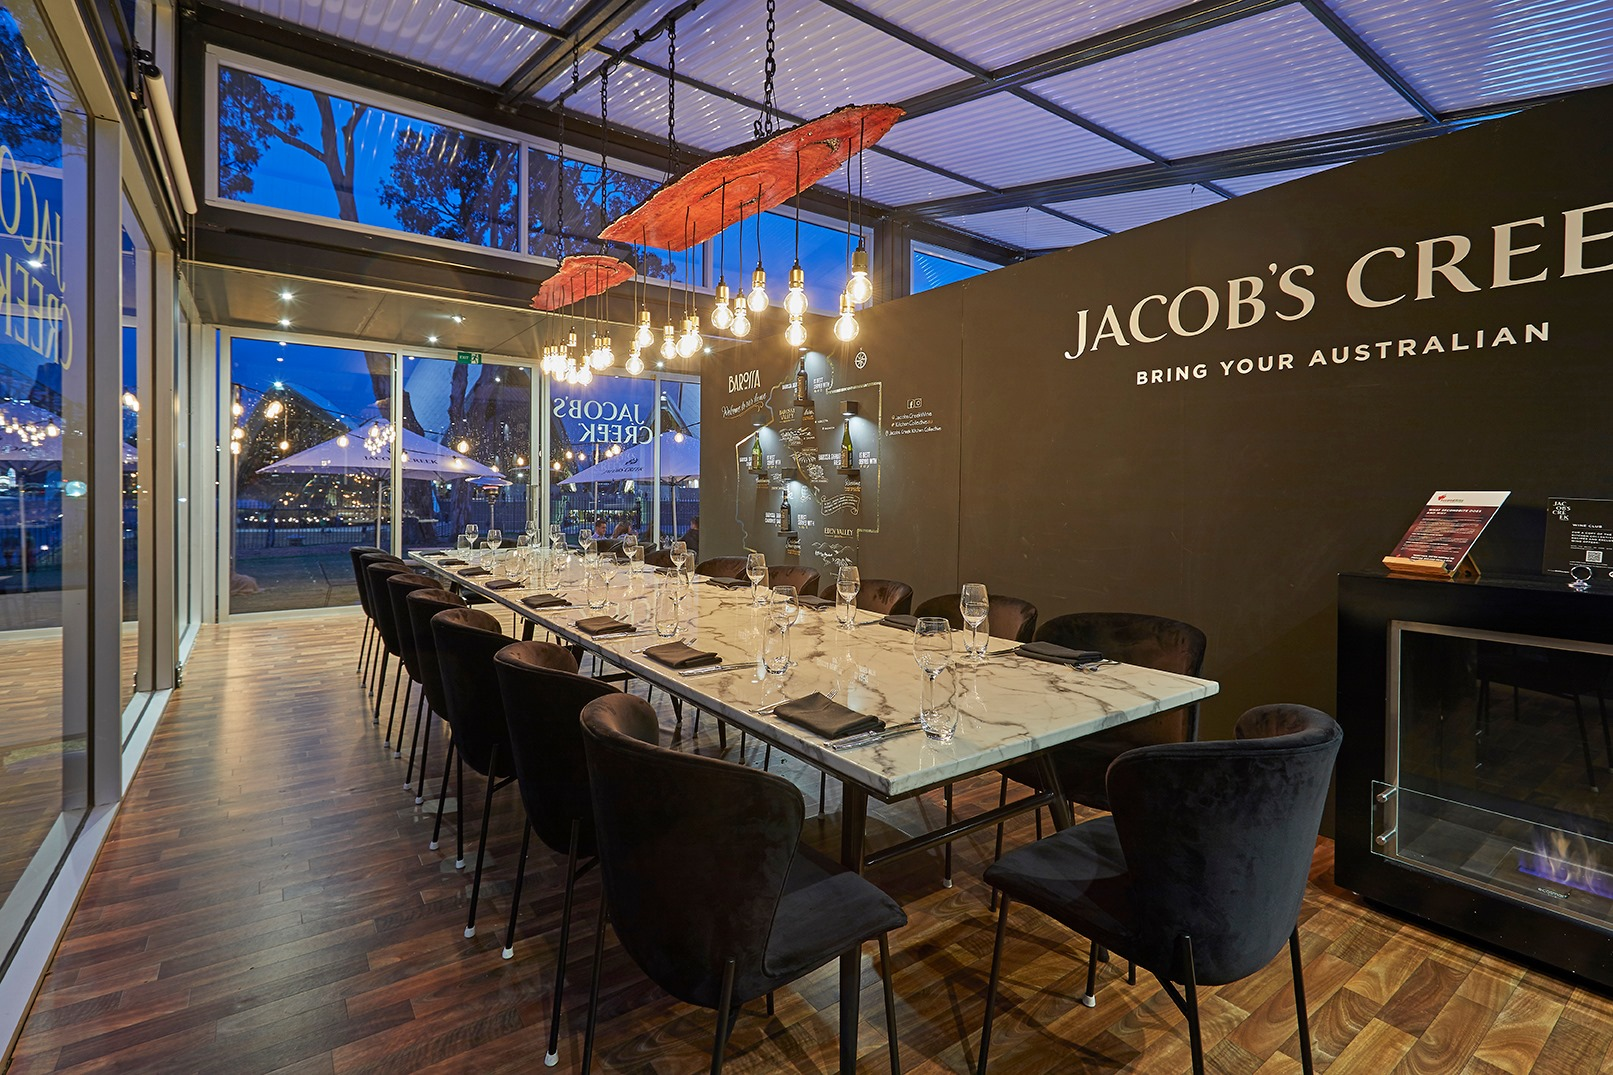 Jacob's Creek is 'Everbright' in Bennelong - Modular Architecture clear Danpal roof panels